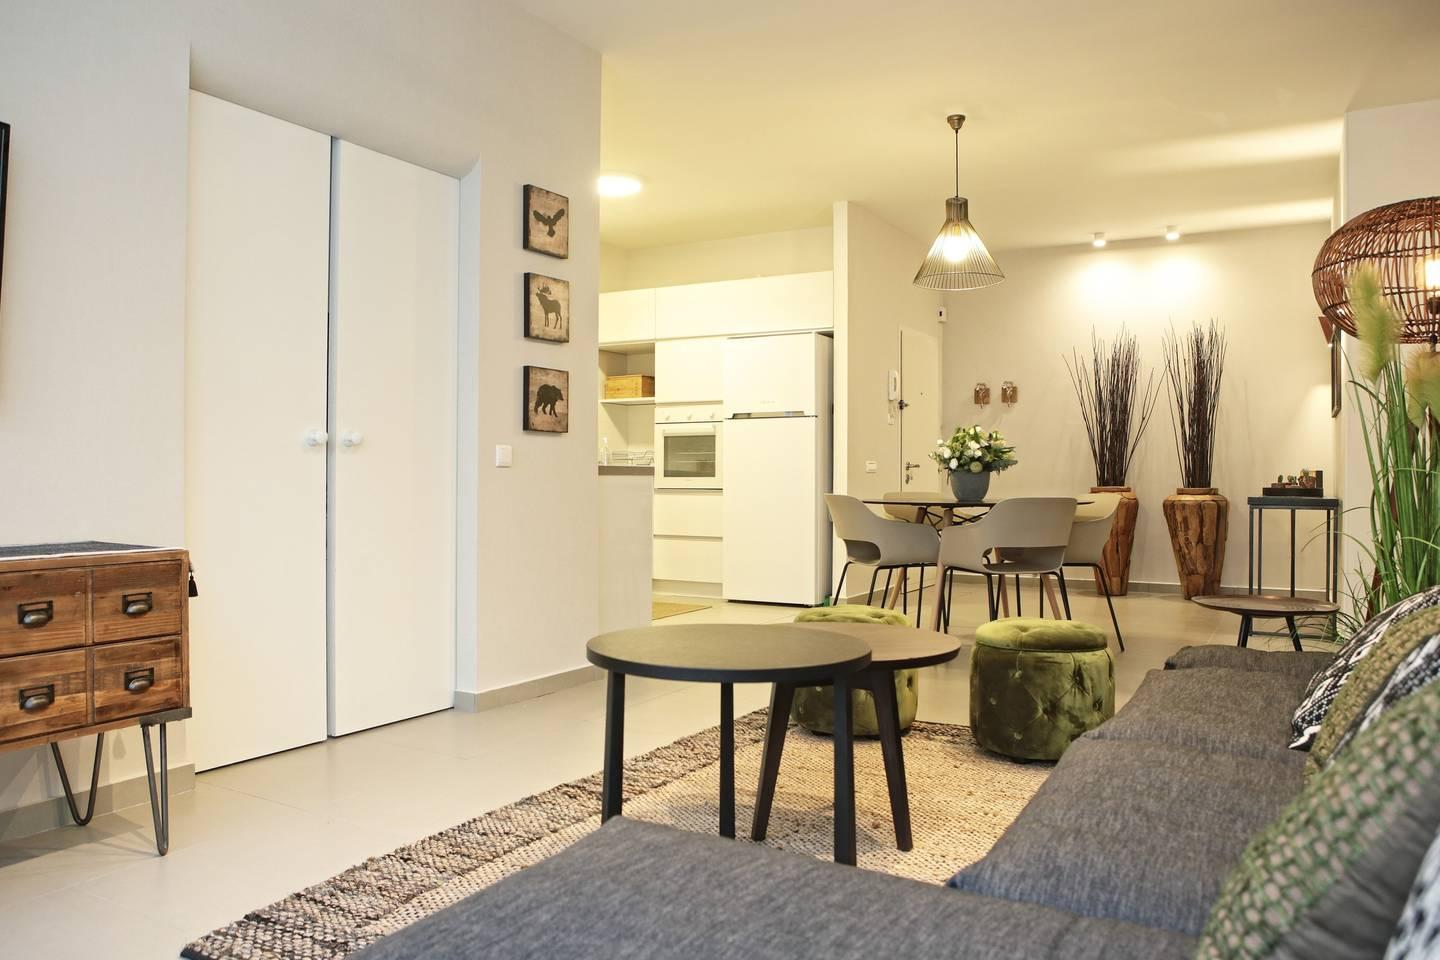 Green Living Flat in the Heart of TLV